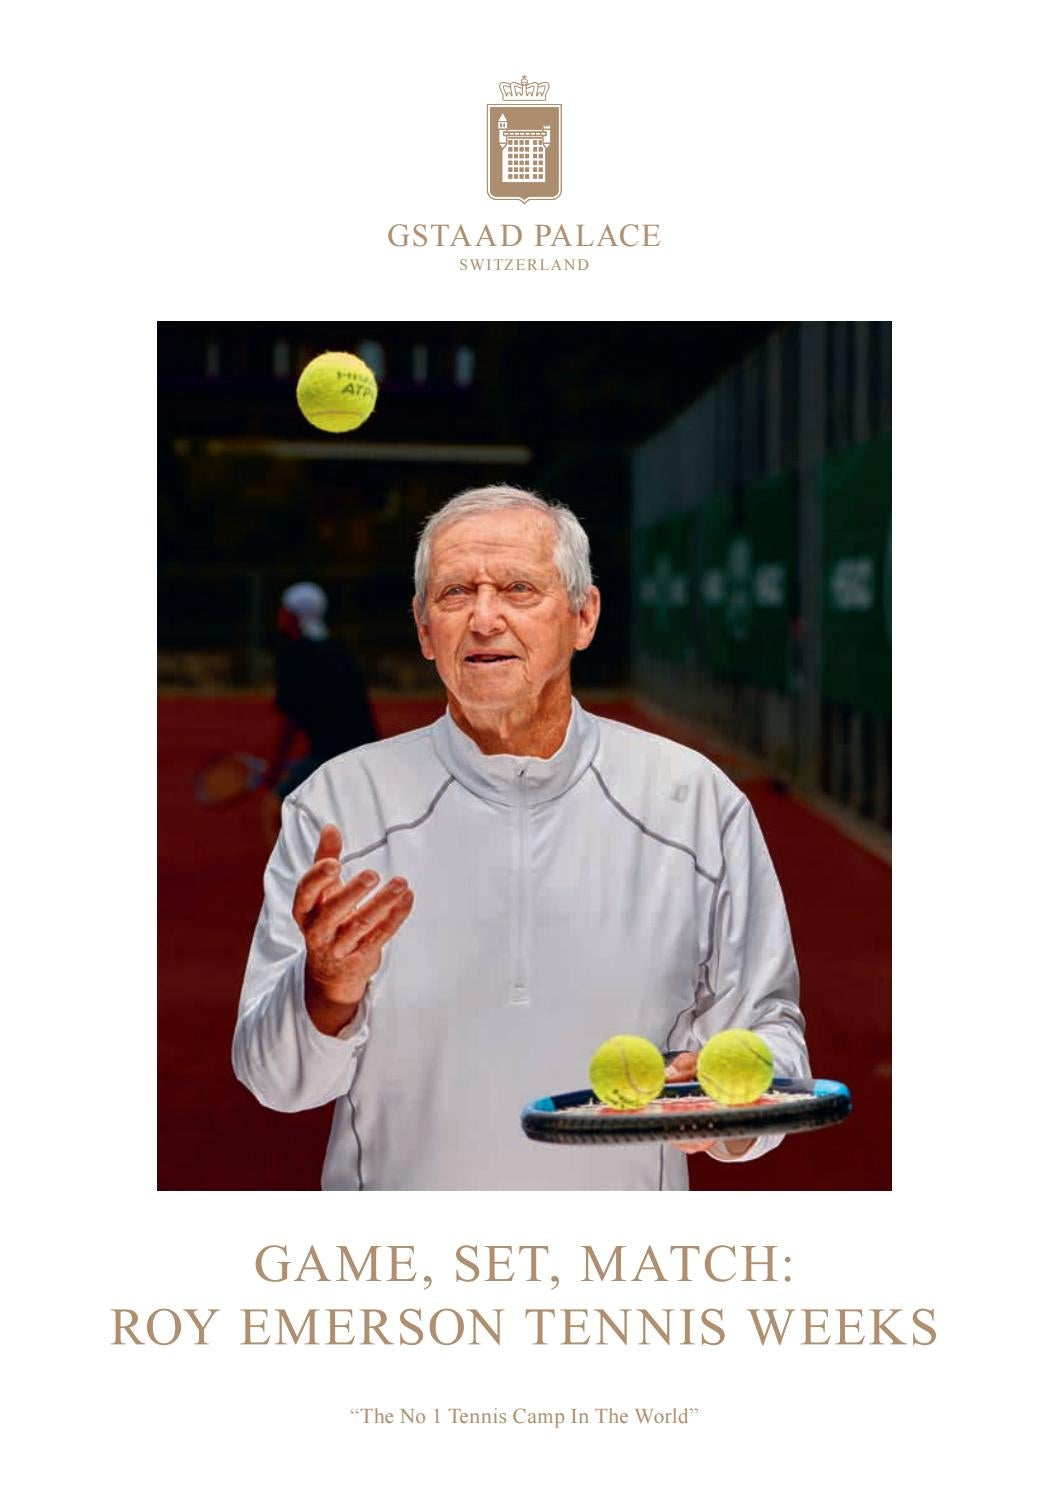 Roy Emerson Tennis Weeks 2019 by Gstaad Palace - issuu